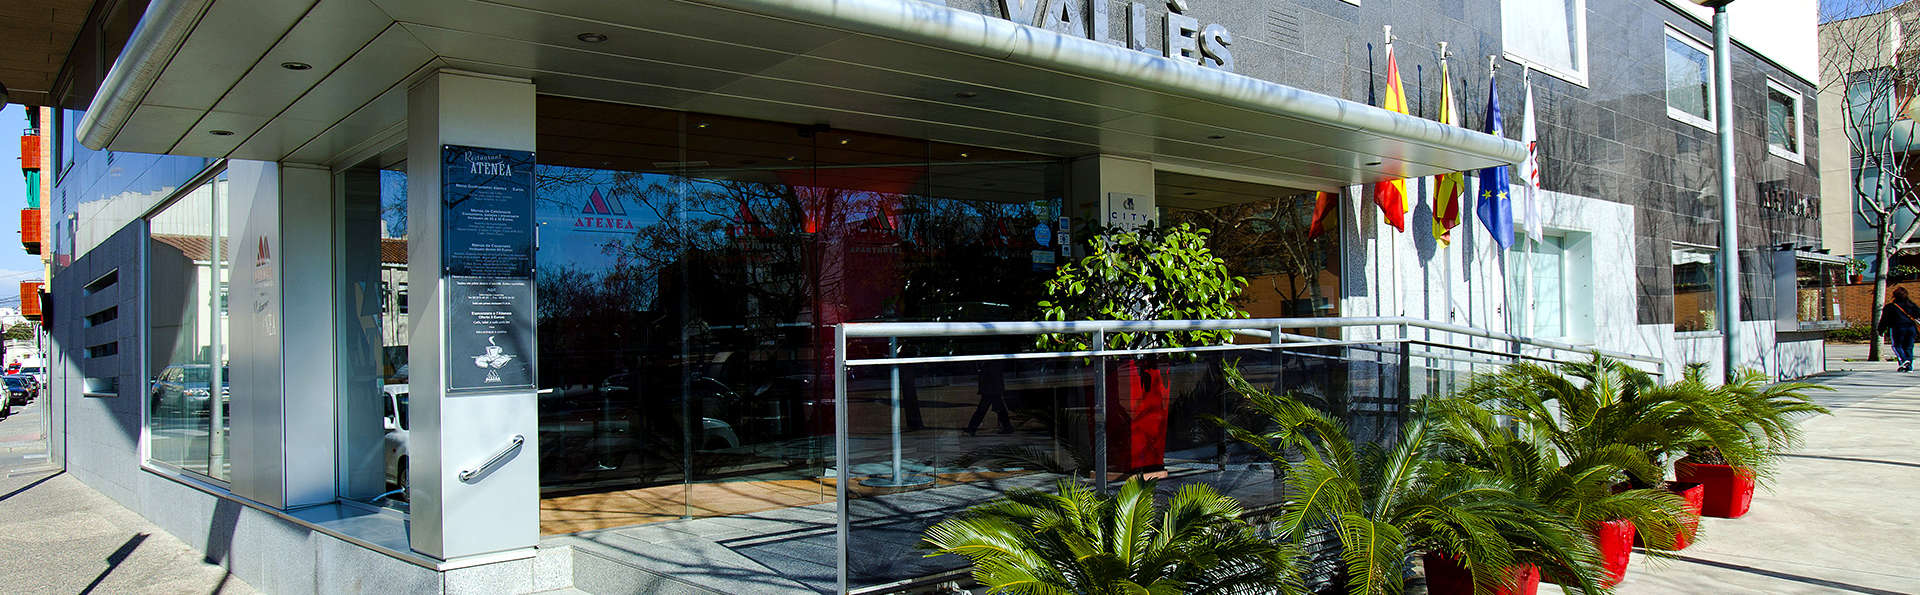 Aparthotel Atenea Valles - EDIT_NEW_FRONT.jpg